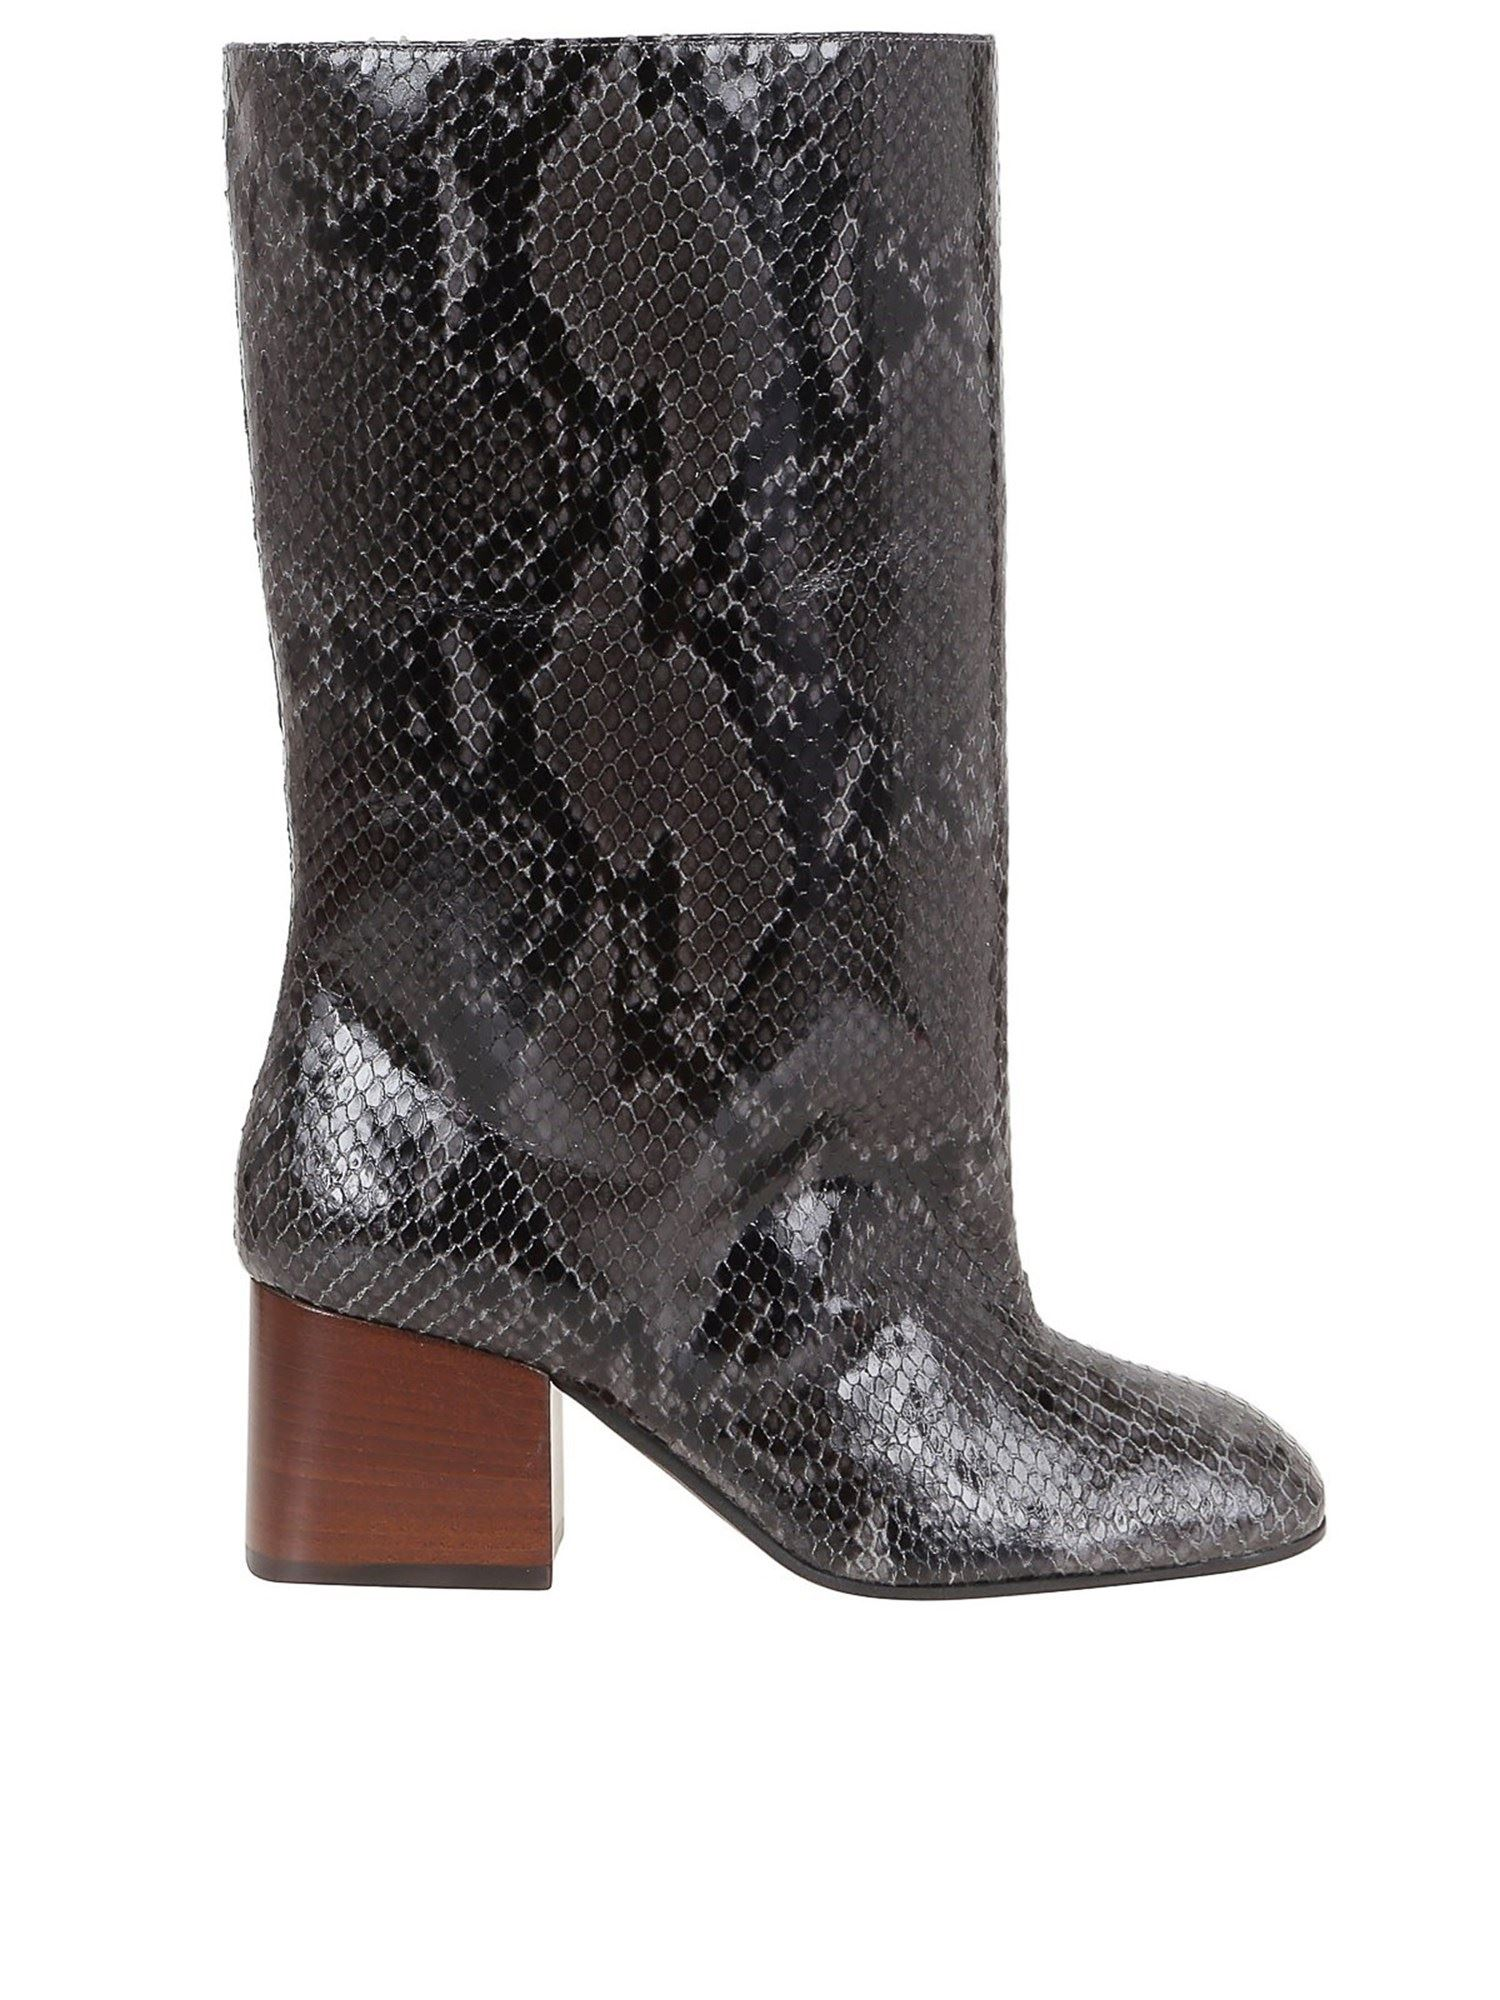 MARNI REPTILE PRINT LEATHER BOOTS IN GREY